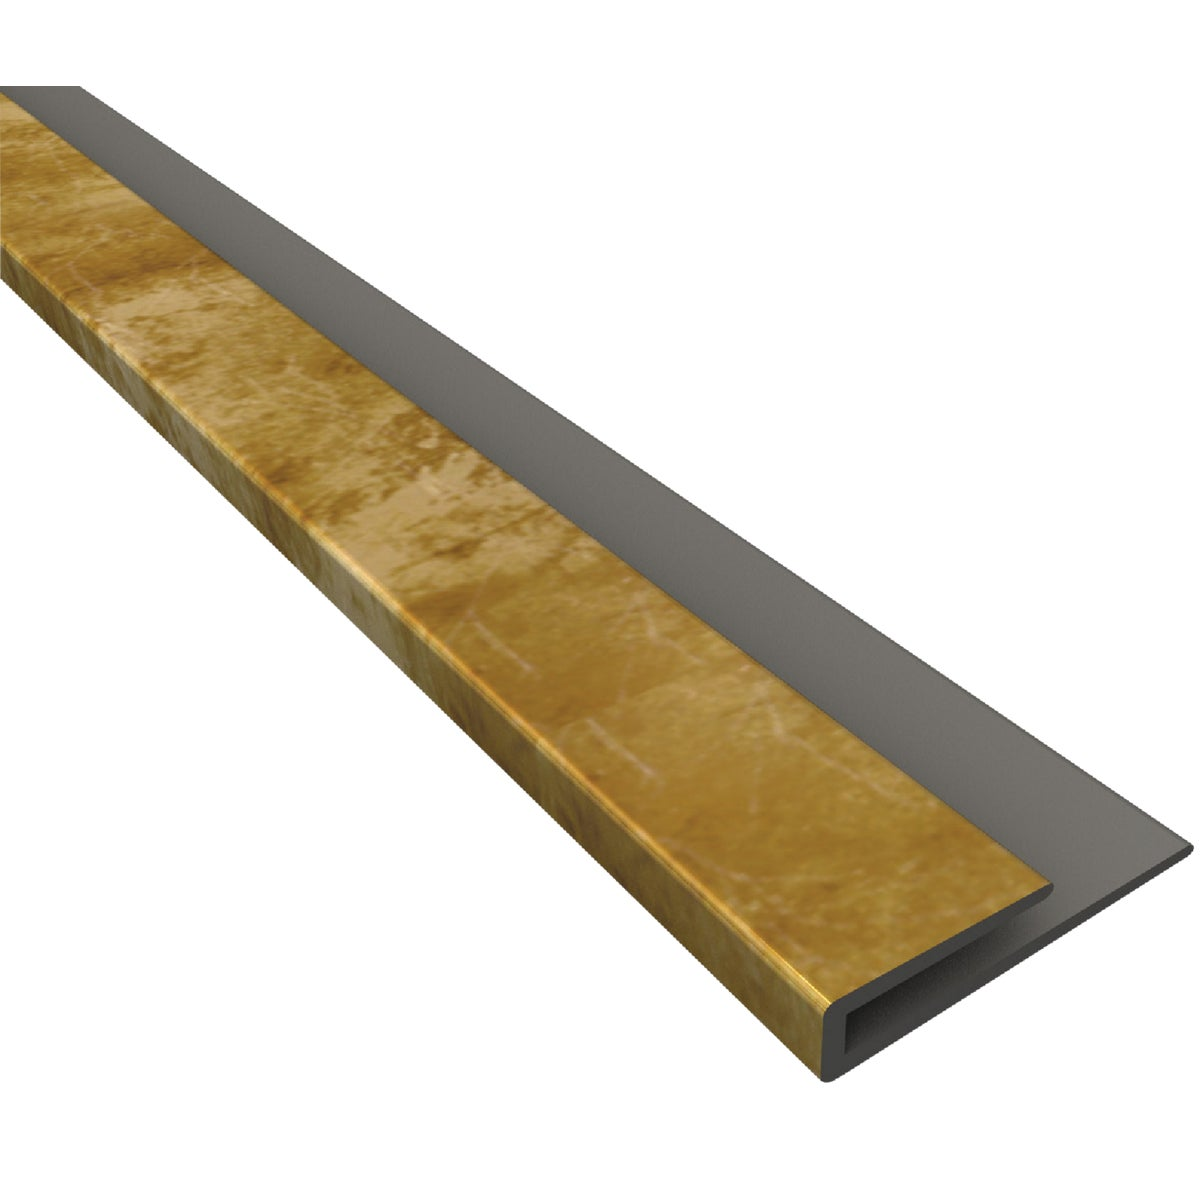 BERM BRONZE EDGE J TRIM - 923-17 by Acp